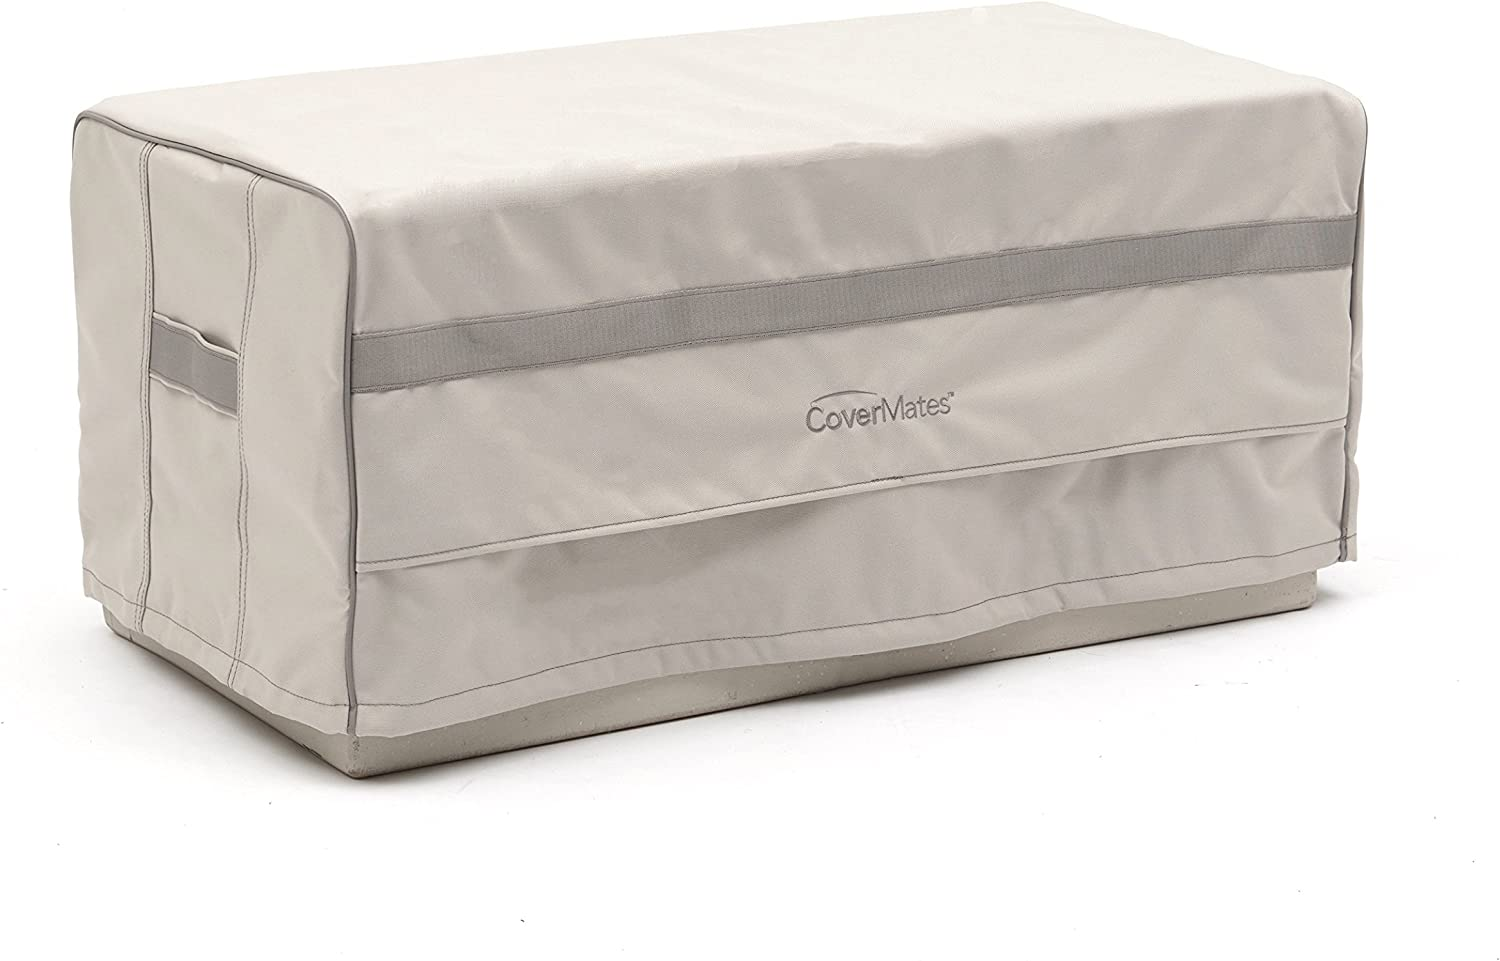 Covermates Rectangular Ottoman Cover 32W x 24D x 18H Prestige 900D Polyester PVC Free Backing Reinforced Handles 7 YR Warranty Weather Resistant – Stone